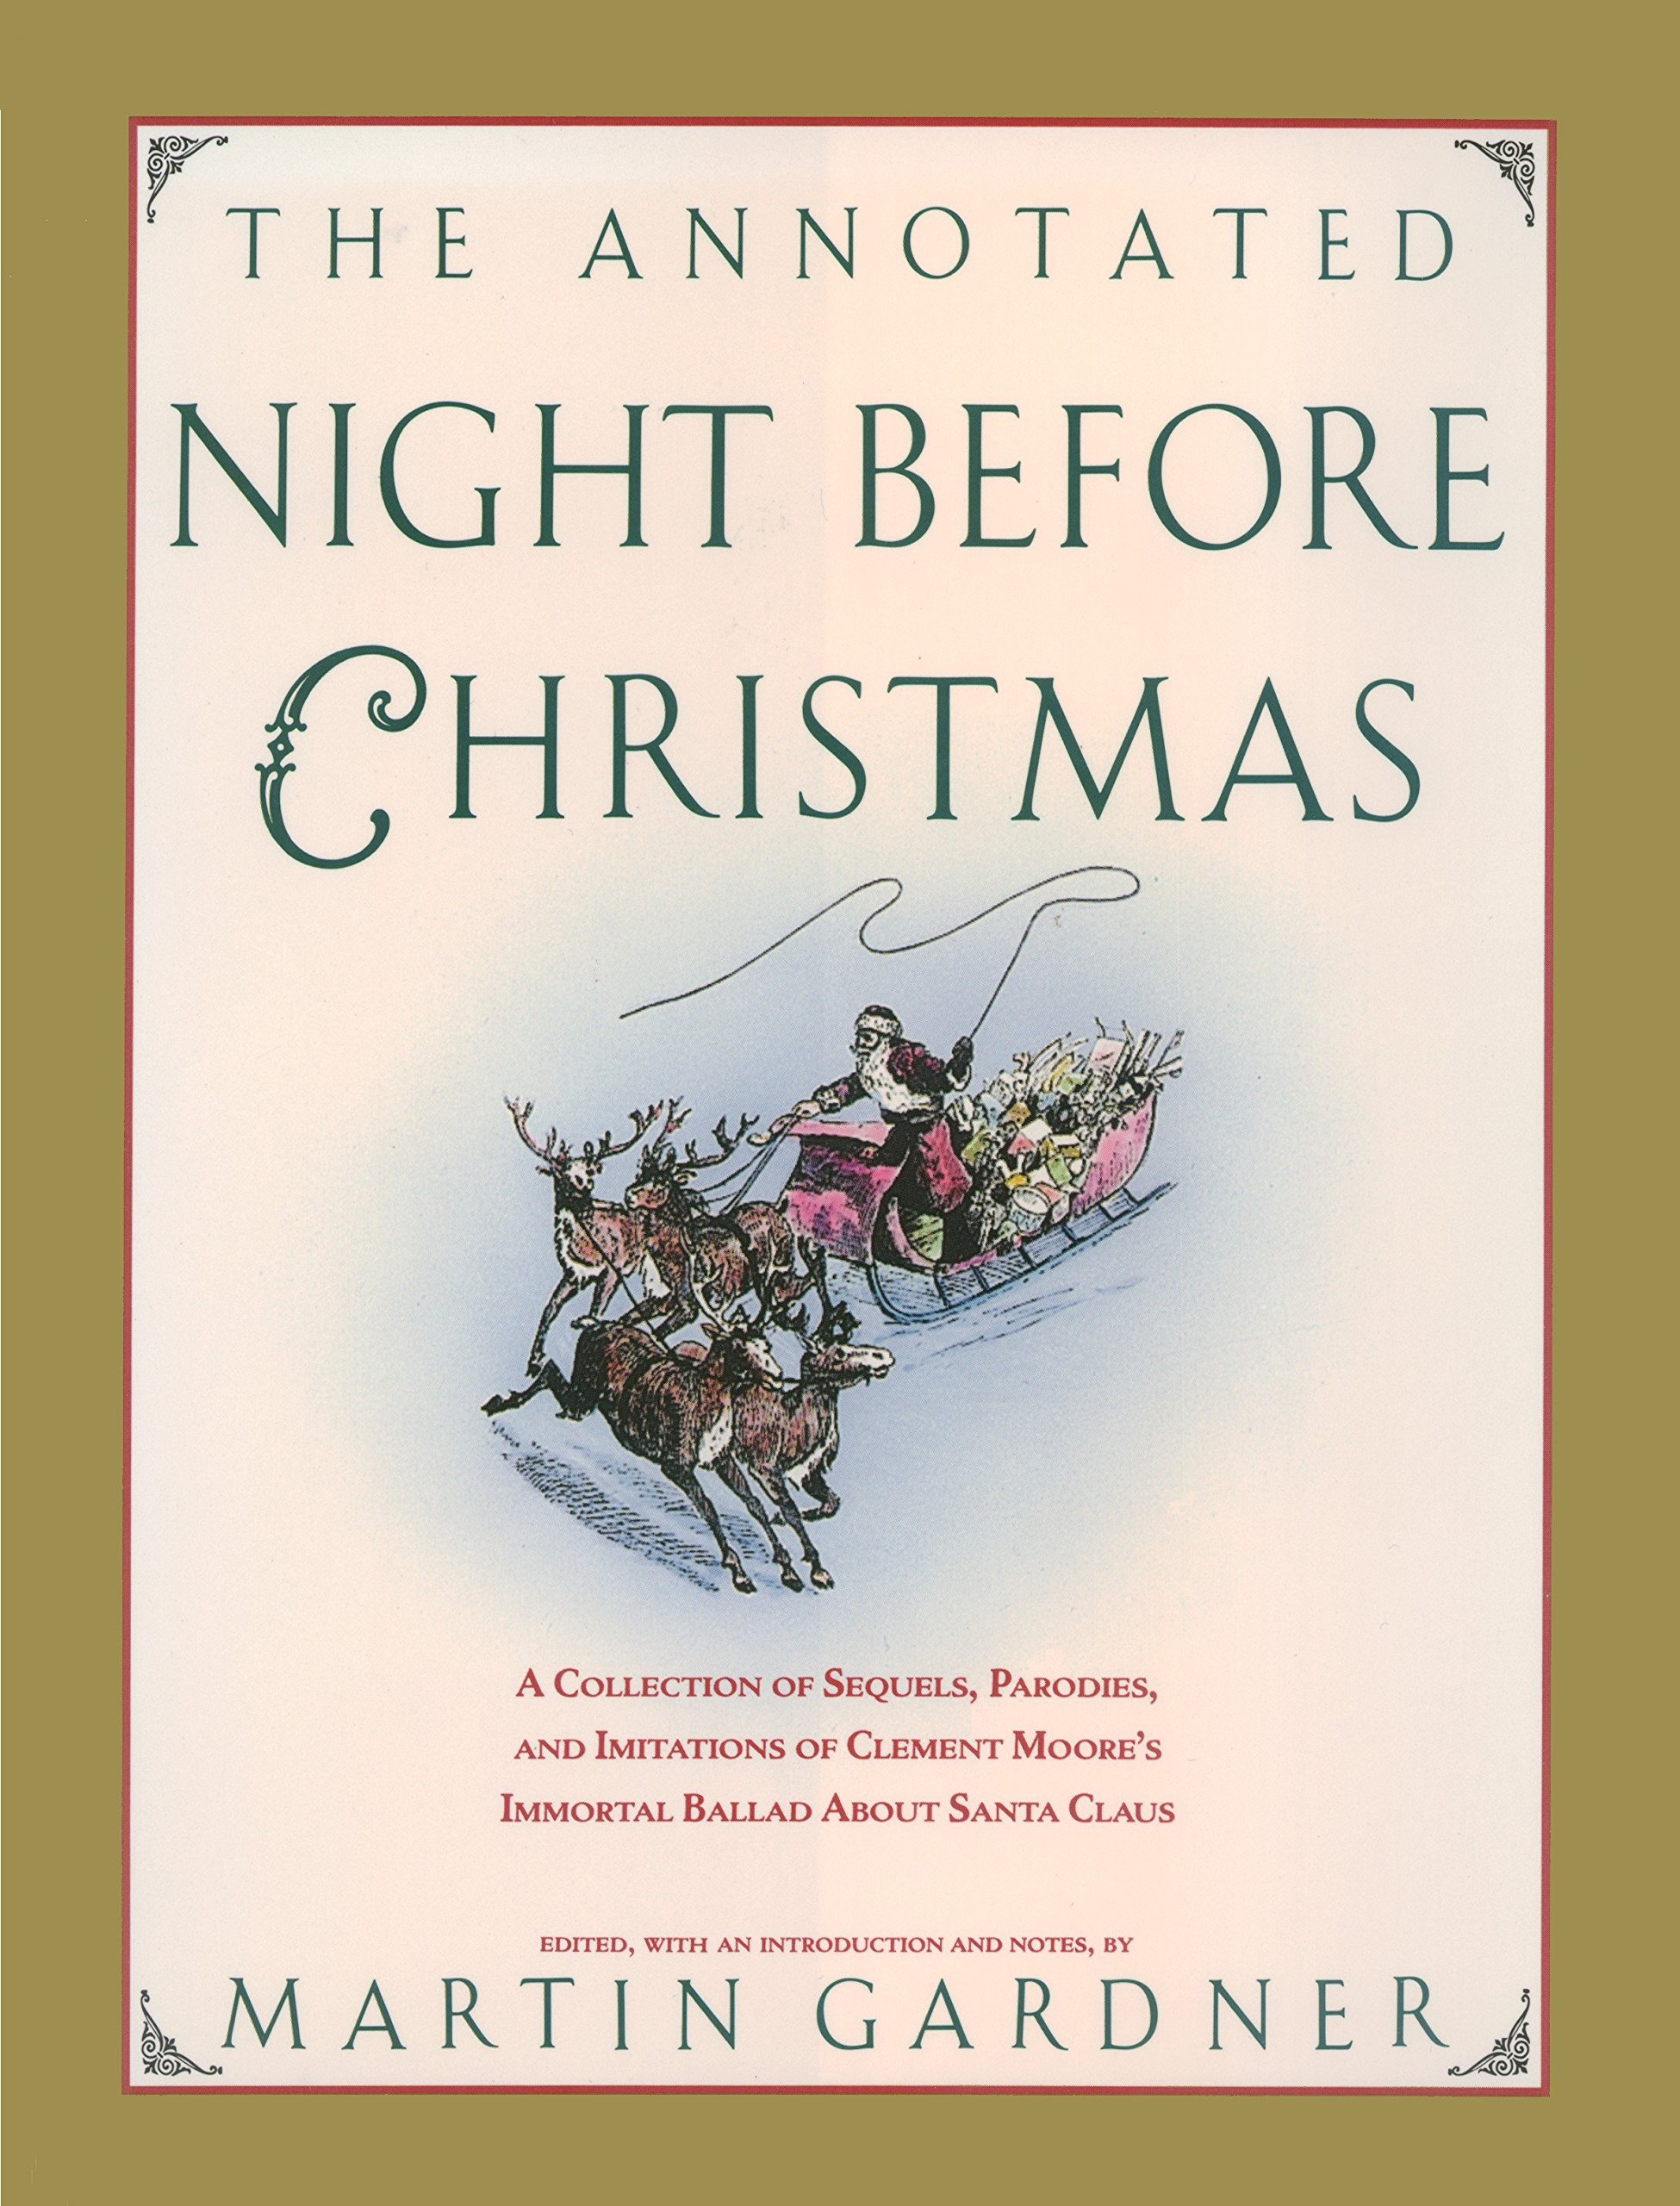 amazoncom the annotated night before christmas a collection of sequels parodies and imitations of clement moores immortal ballad about santa claus - Twas The Night Before Christmas Parody